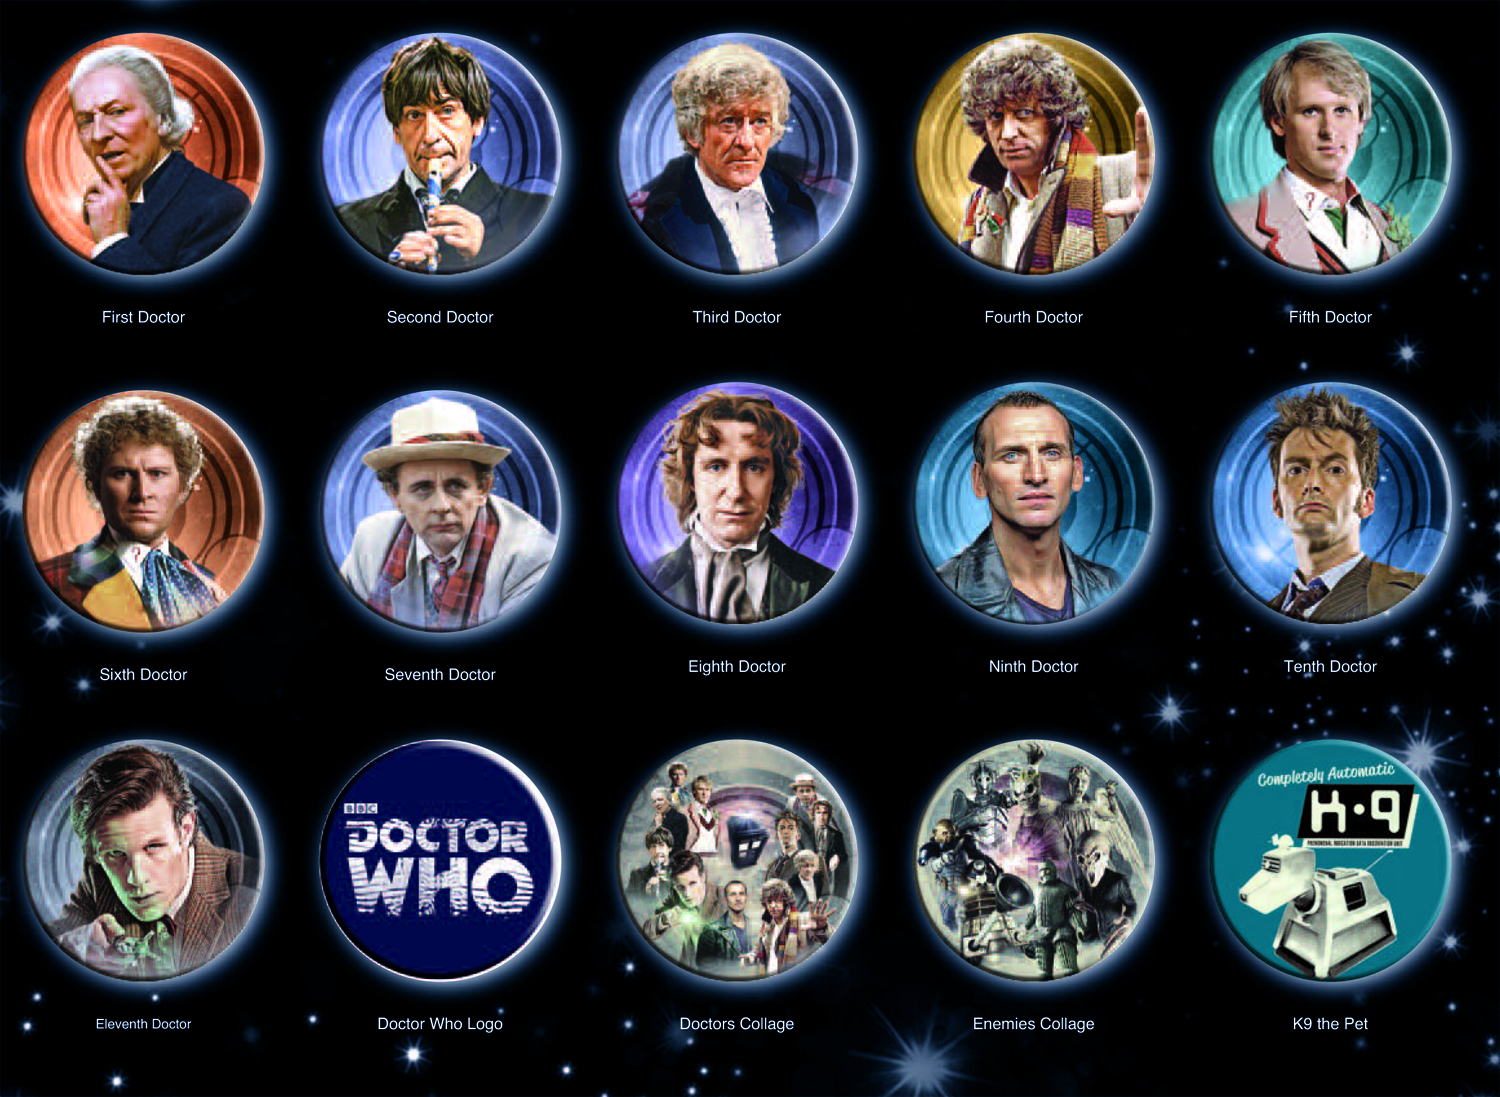 DOCTOR WHO DOCTORS 120 PC BUTTON MAGNET ASST